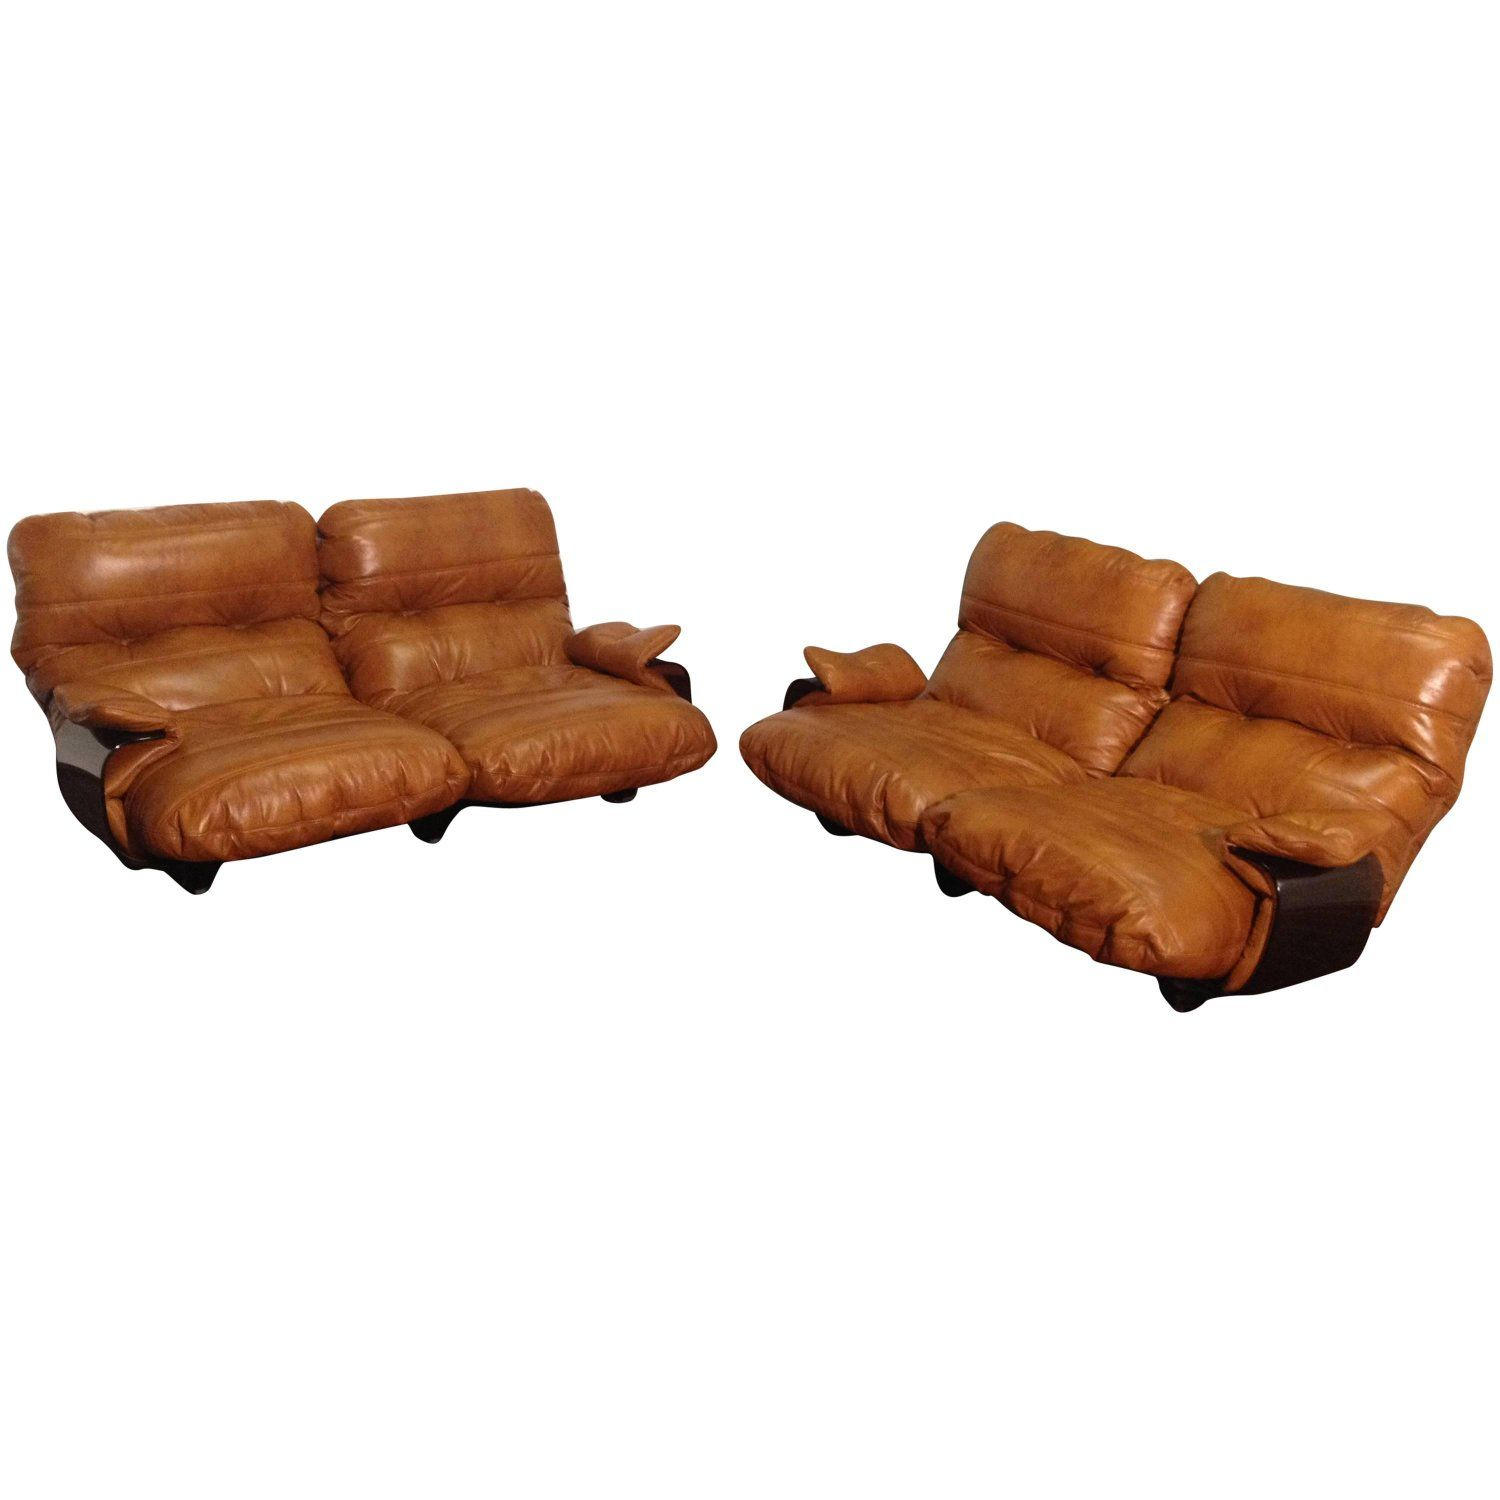 Cognac Leather Marsala Lounge Chairs by Michel Ducaroy for Ligne ...